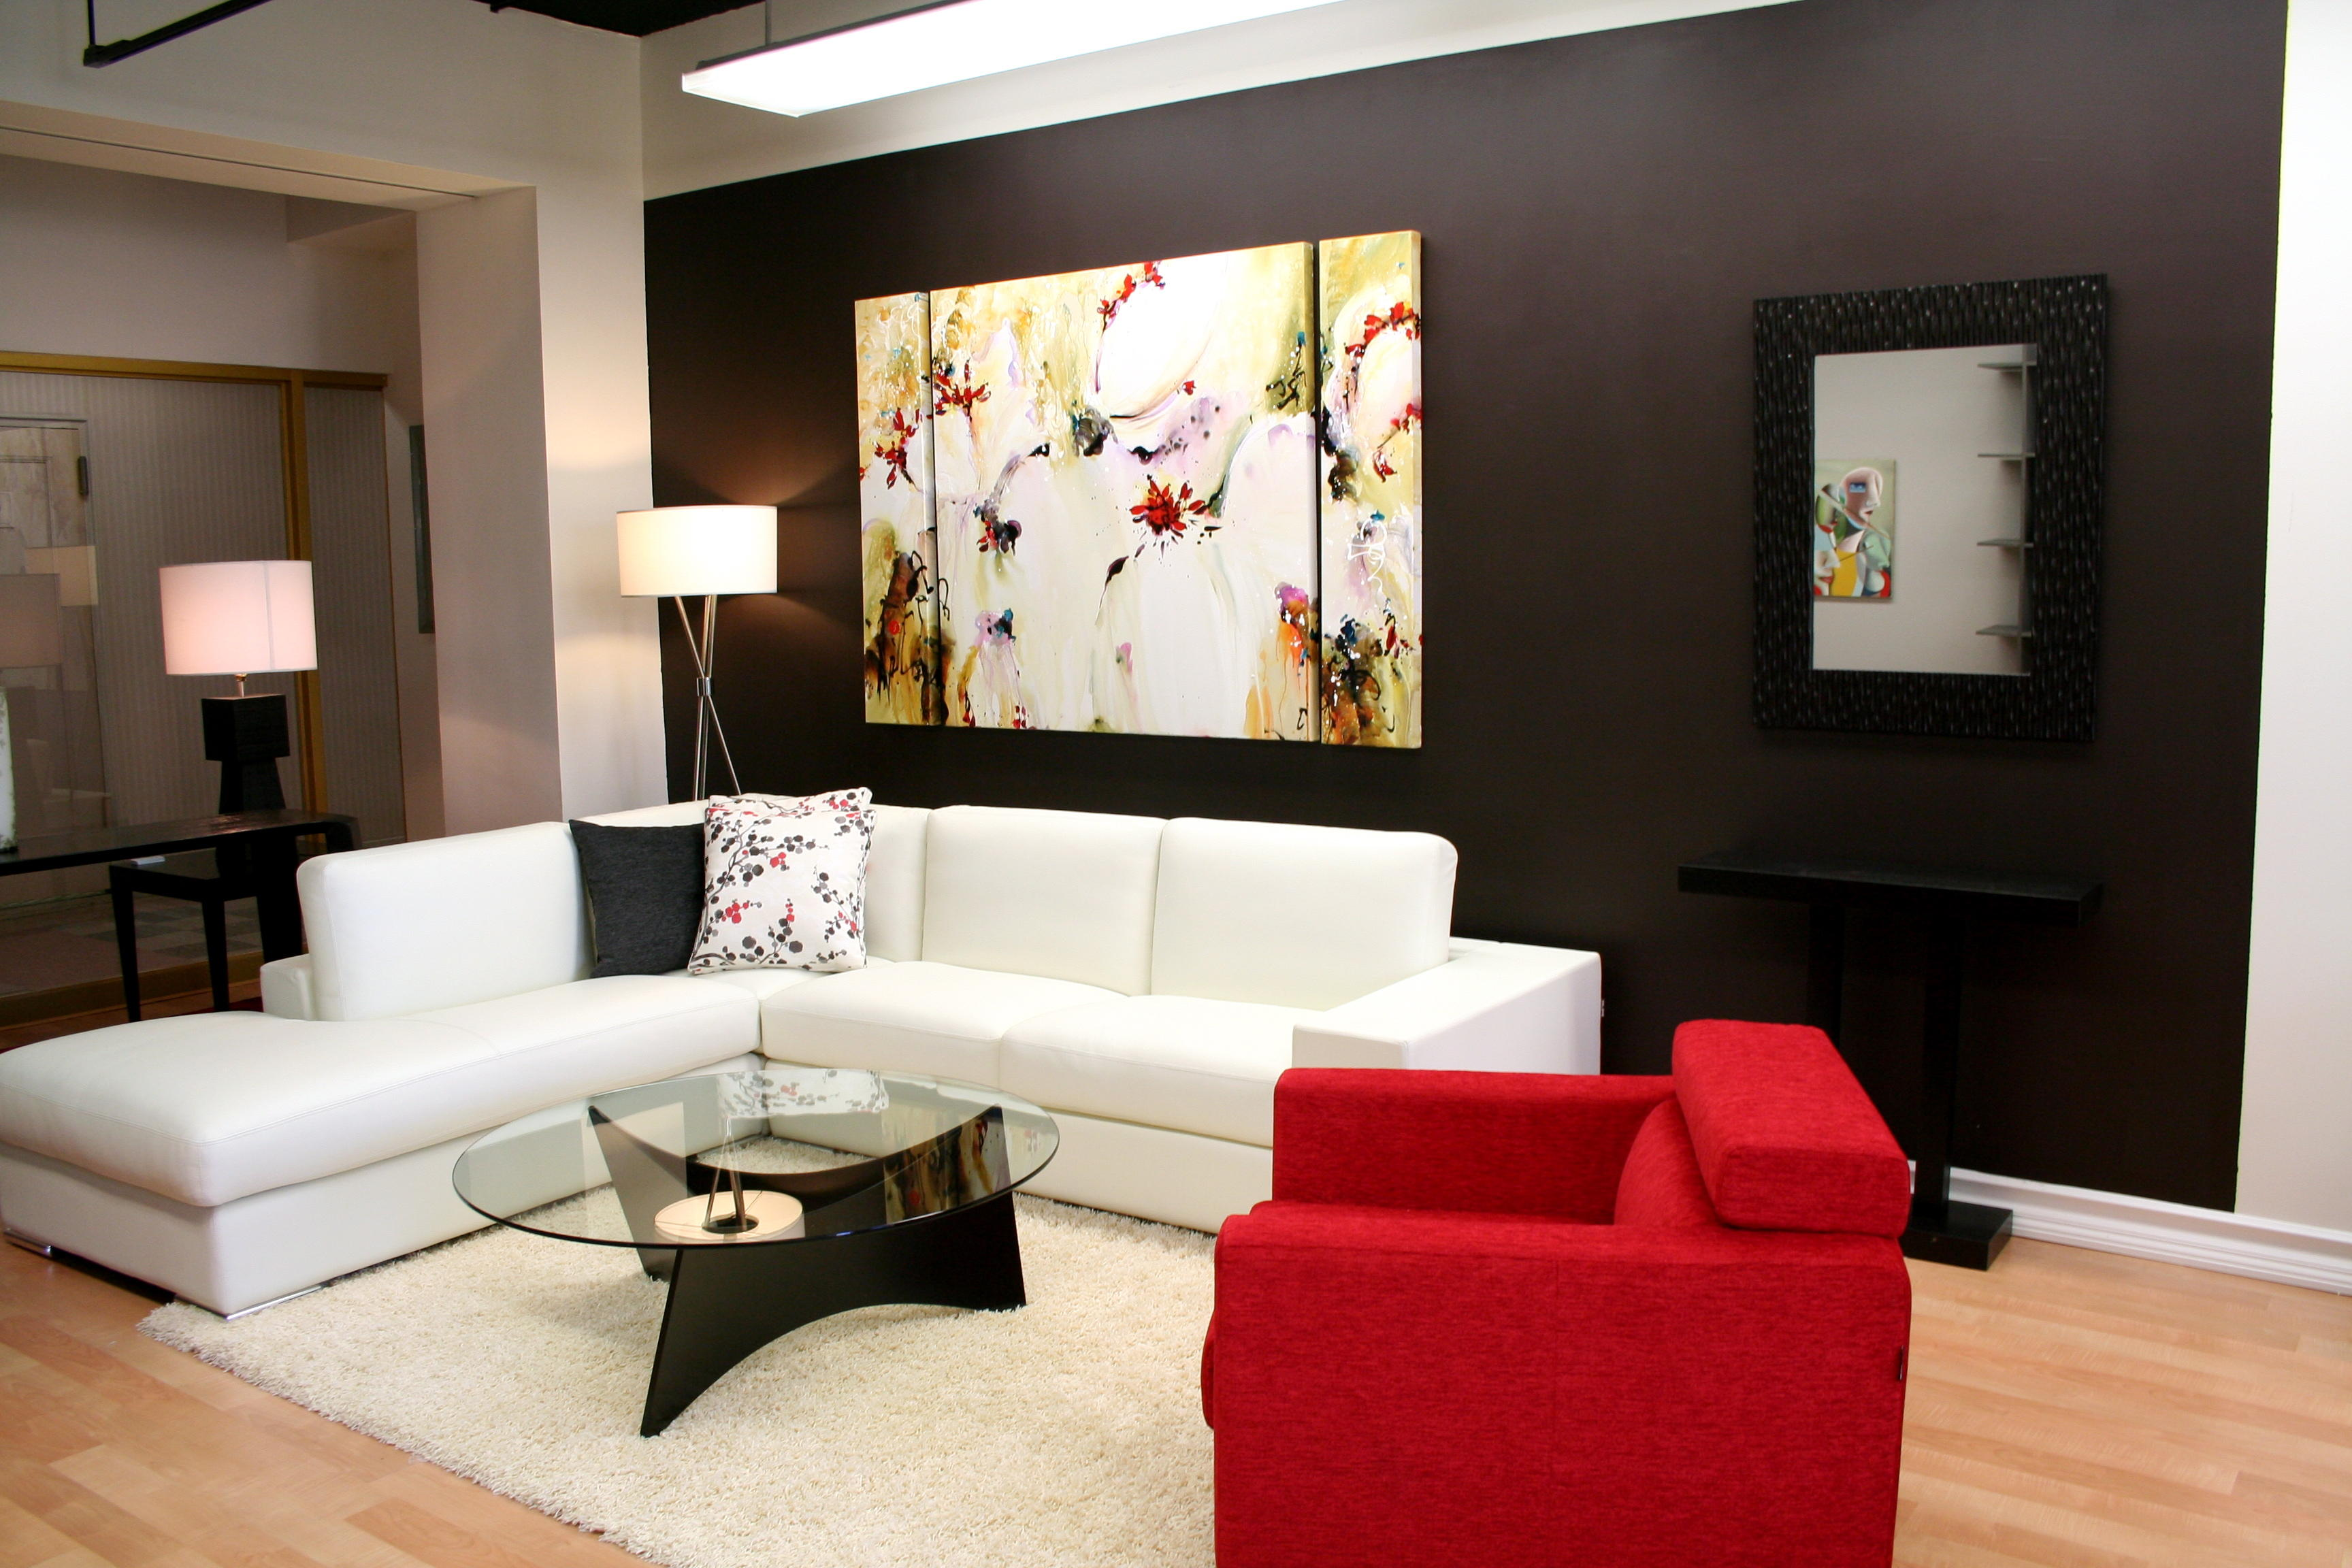 Modern Living Room with Interesting Wall Decorating Ideas and White Sectional Sofa facing Glass Top Coffee Table